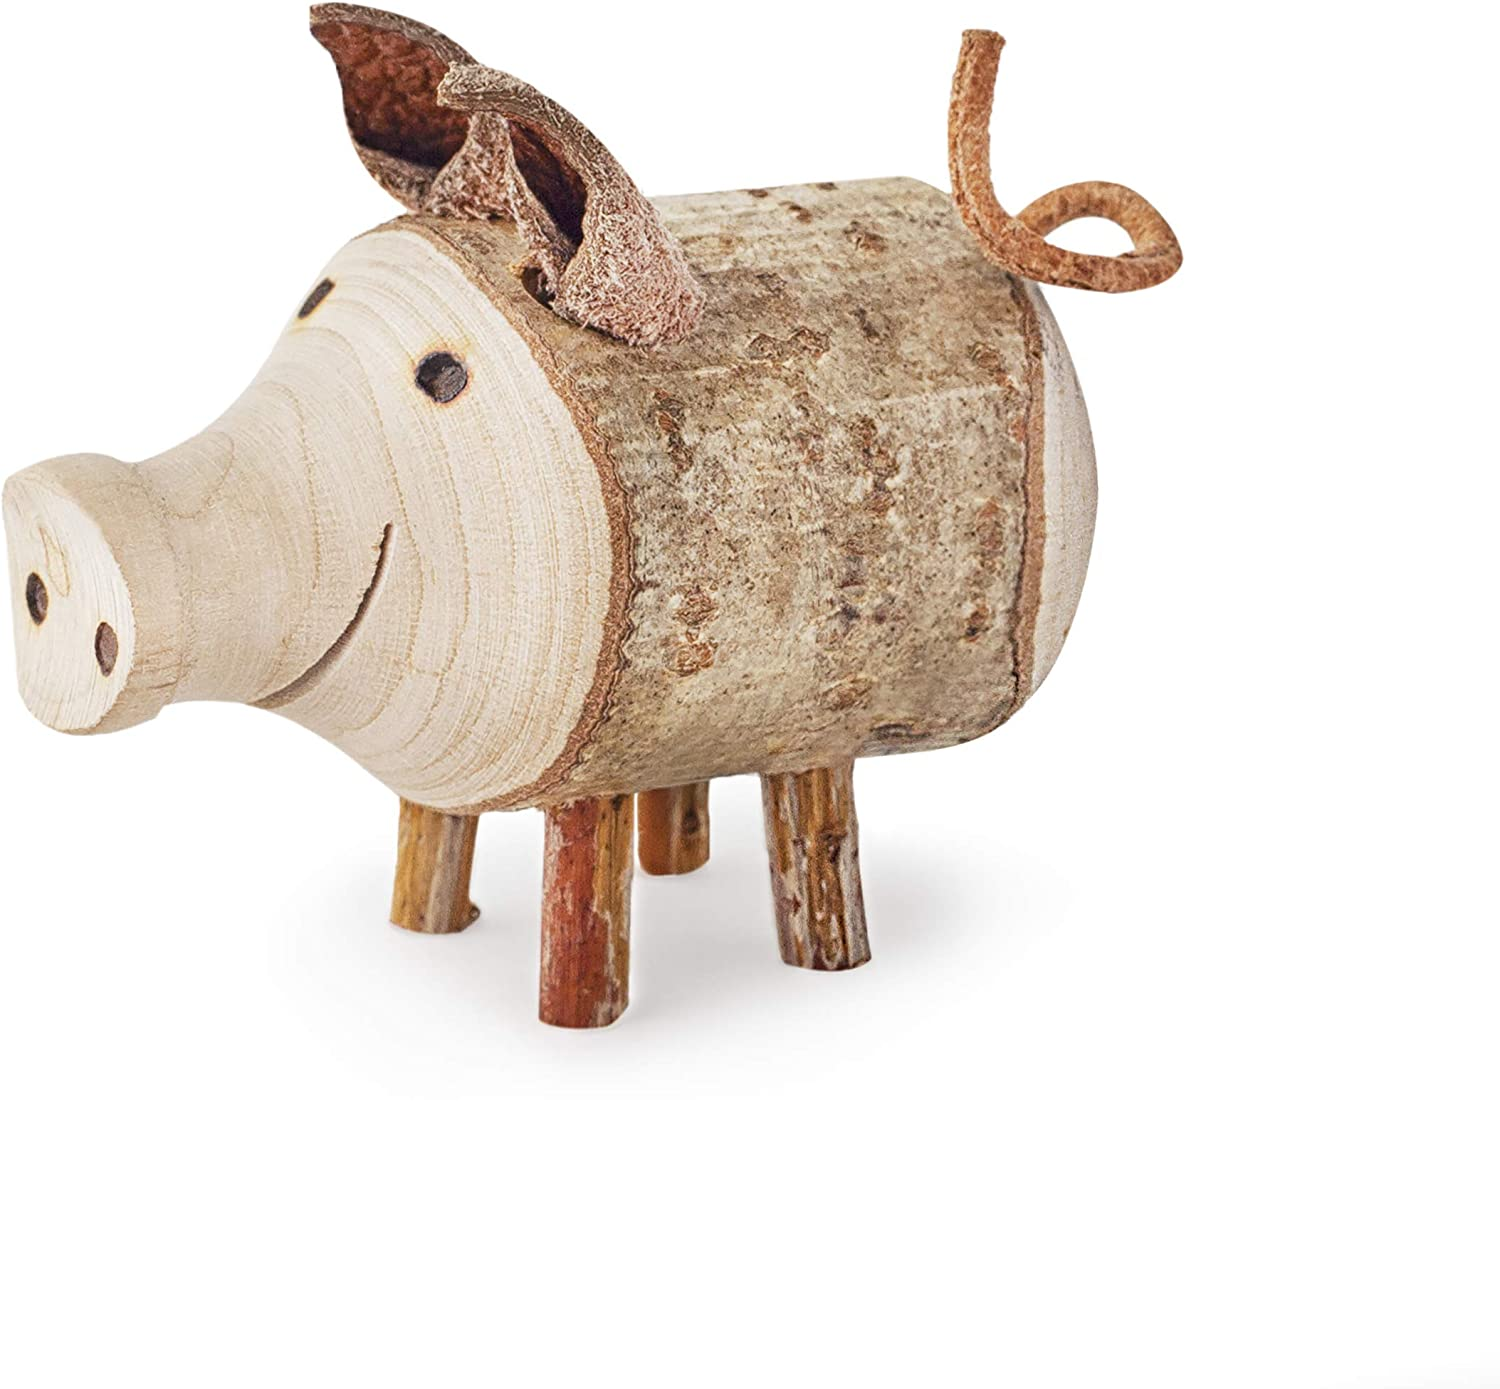 Forest Decor Wooden Pig Figurine, Small Animal Figurines, Natural Farmhouse Cute Decorations for Living Room, Bedroom, or Nursery, Handmade in Germany, Tiny Pig